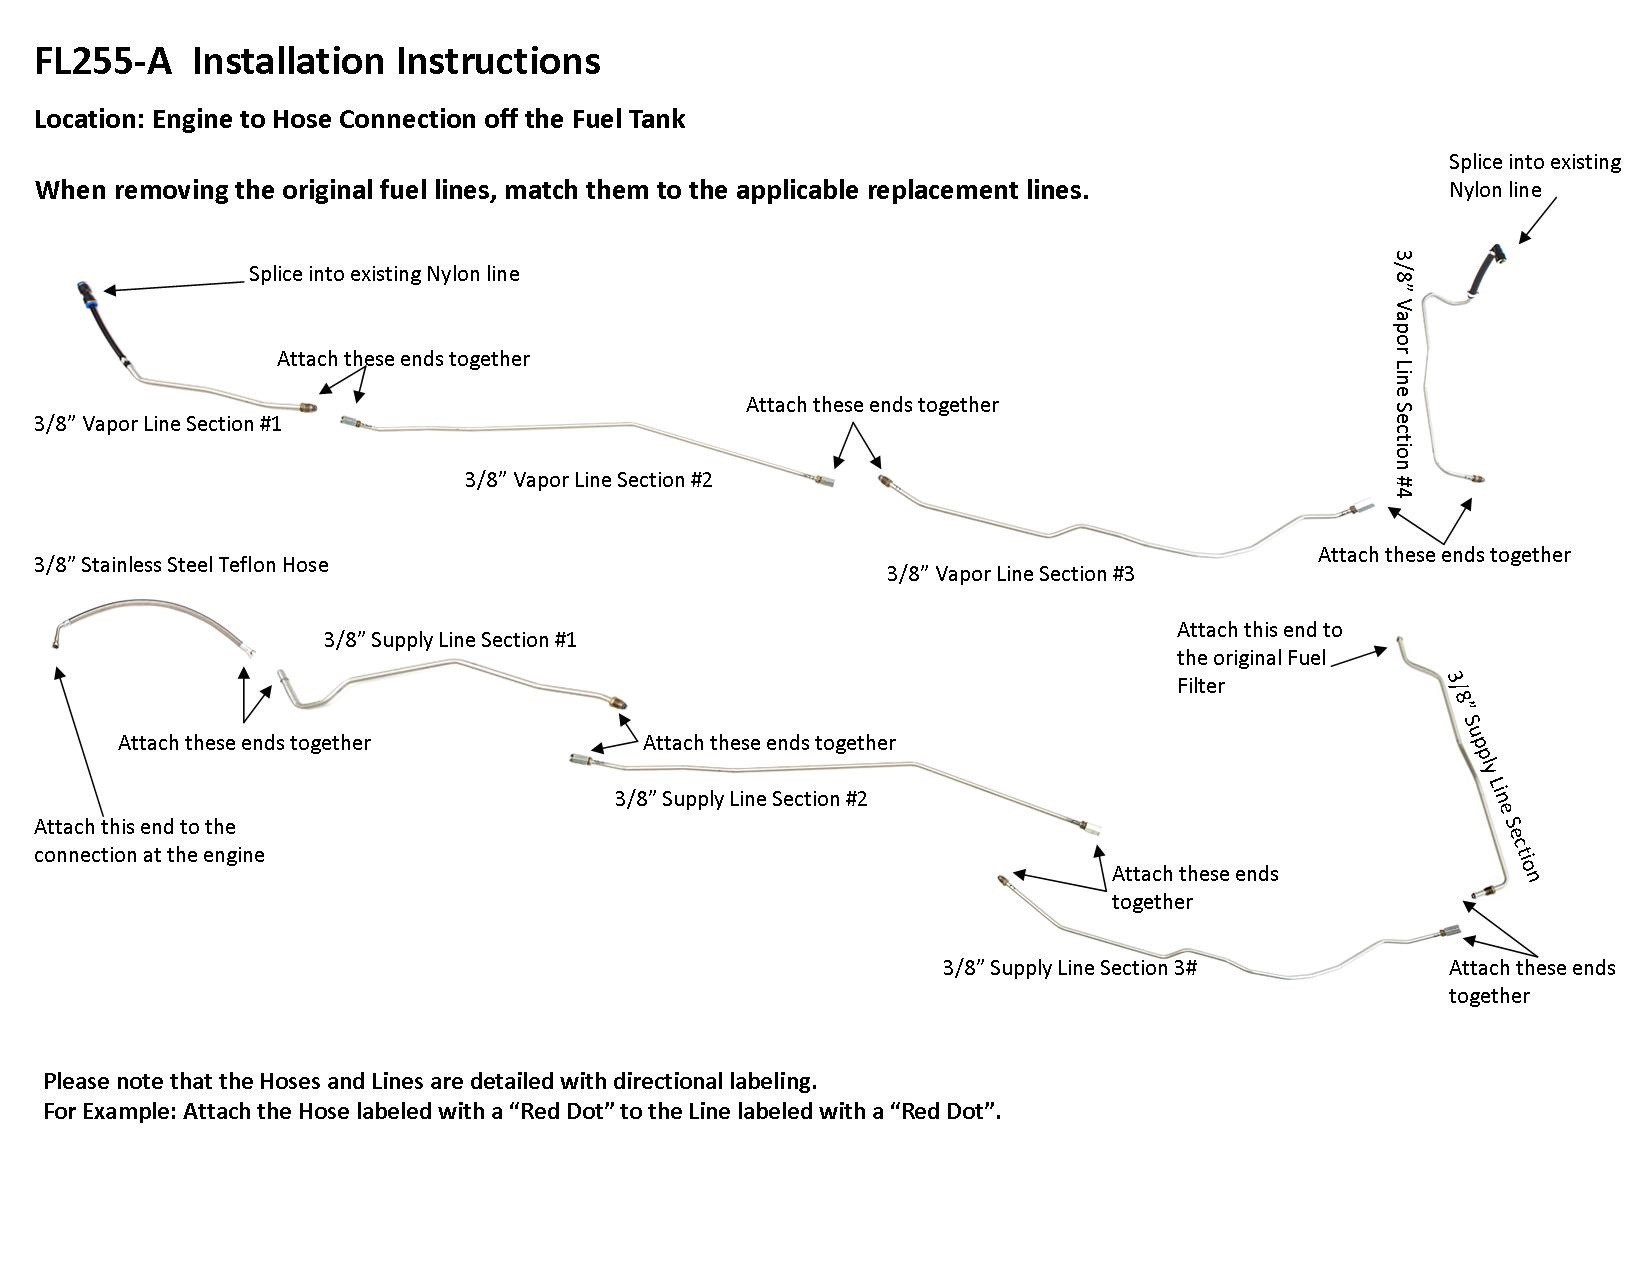 FL255-A Installation Instructions - Lines To Go [ 1275 x 1650 Pixel ]